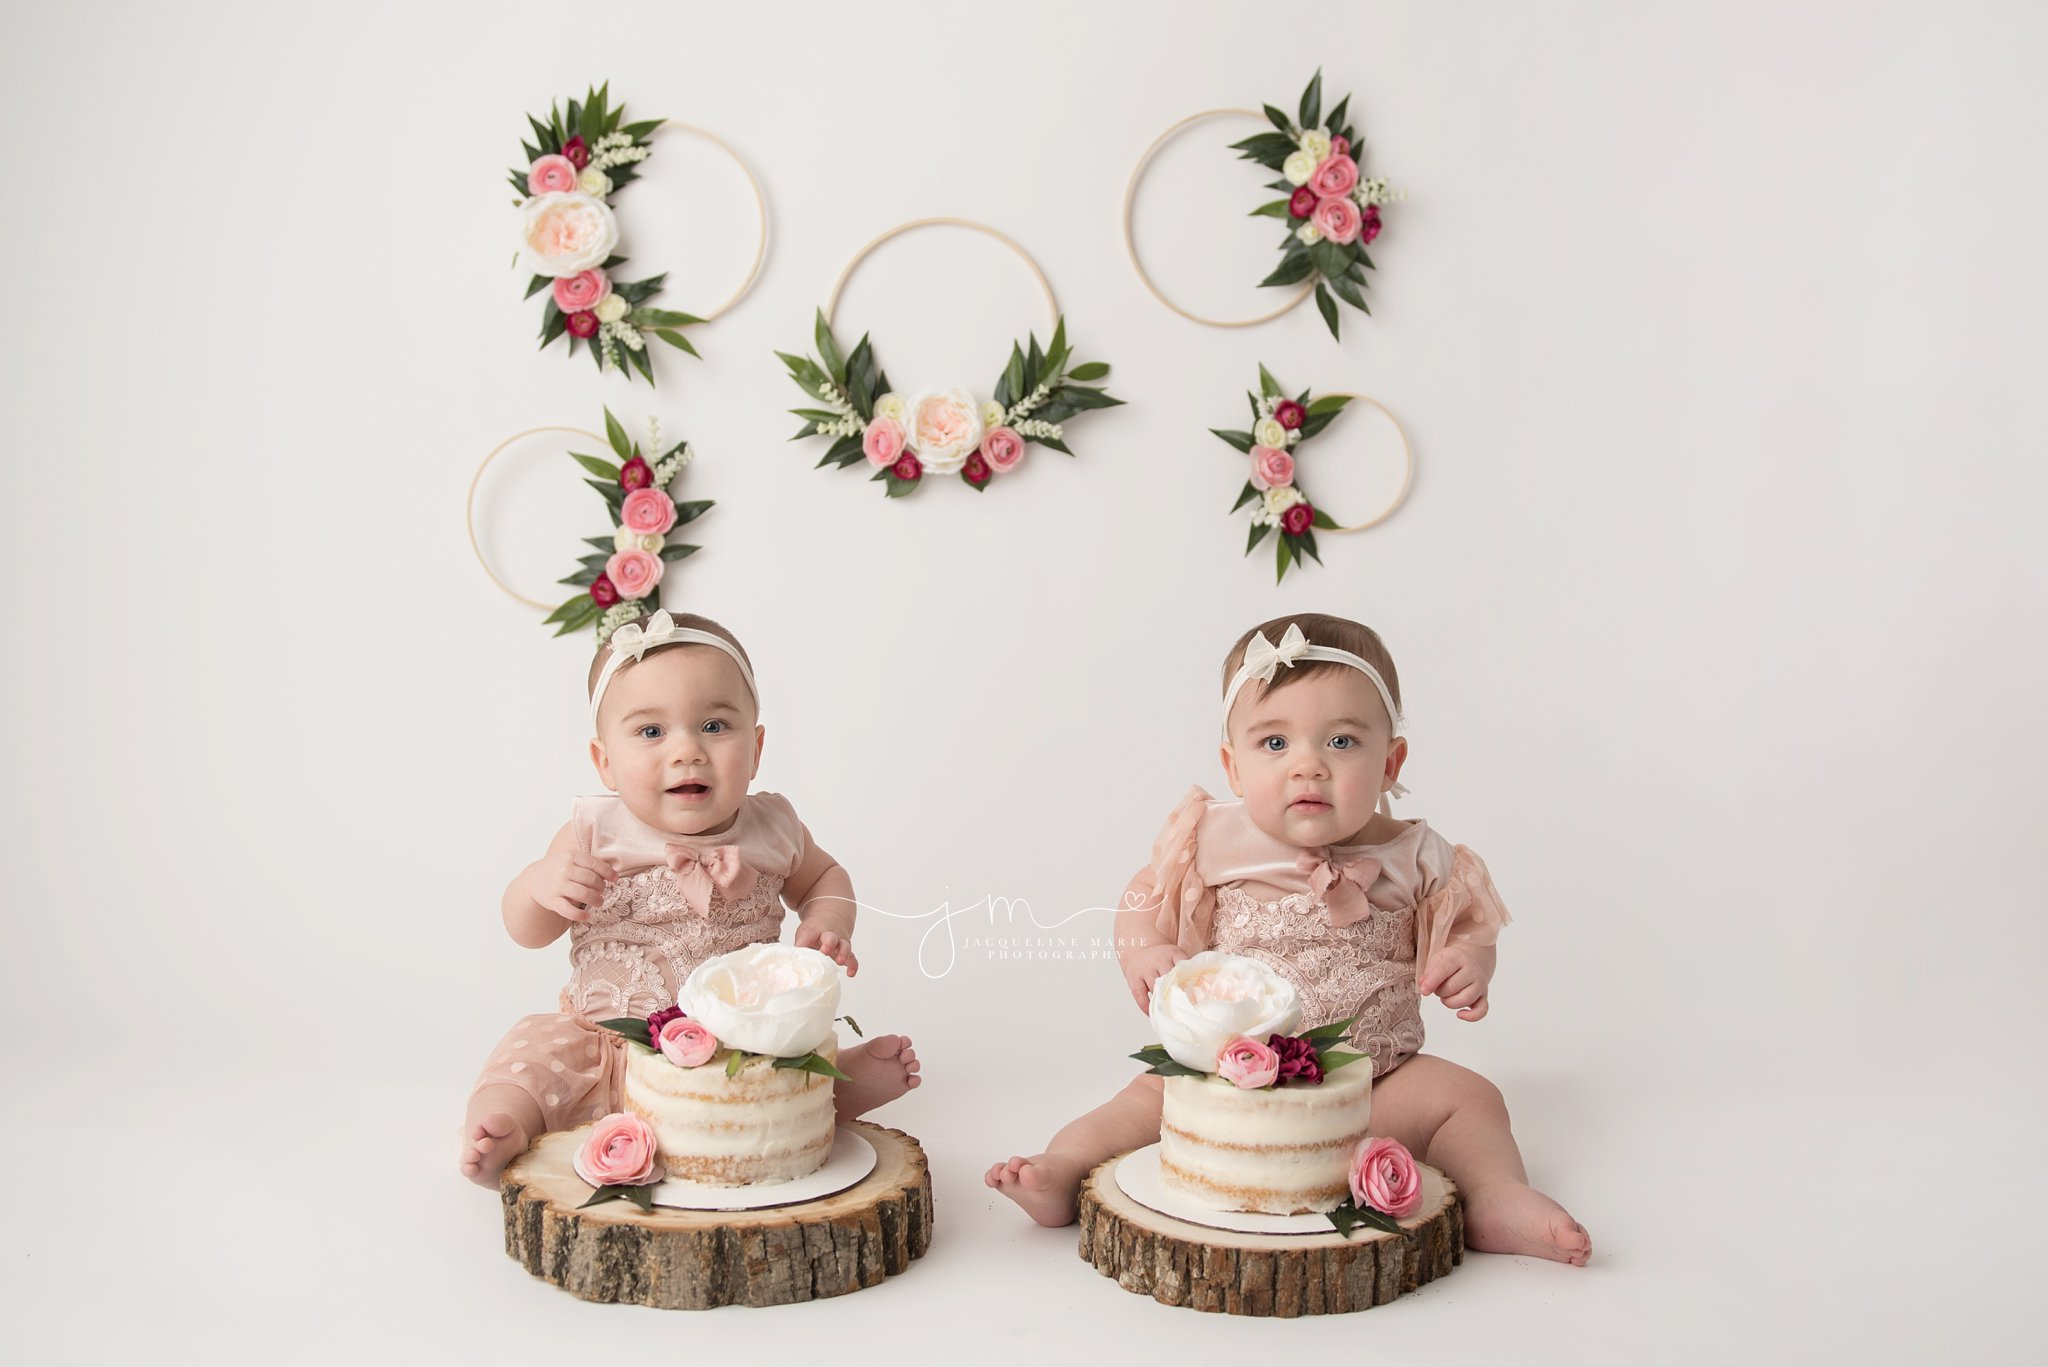 twin sisters wearing matching pink rompers and headbands for floral cake smash pictures in columbus ohio